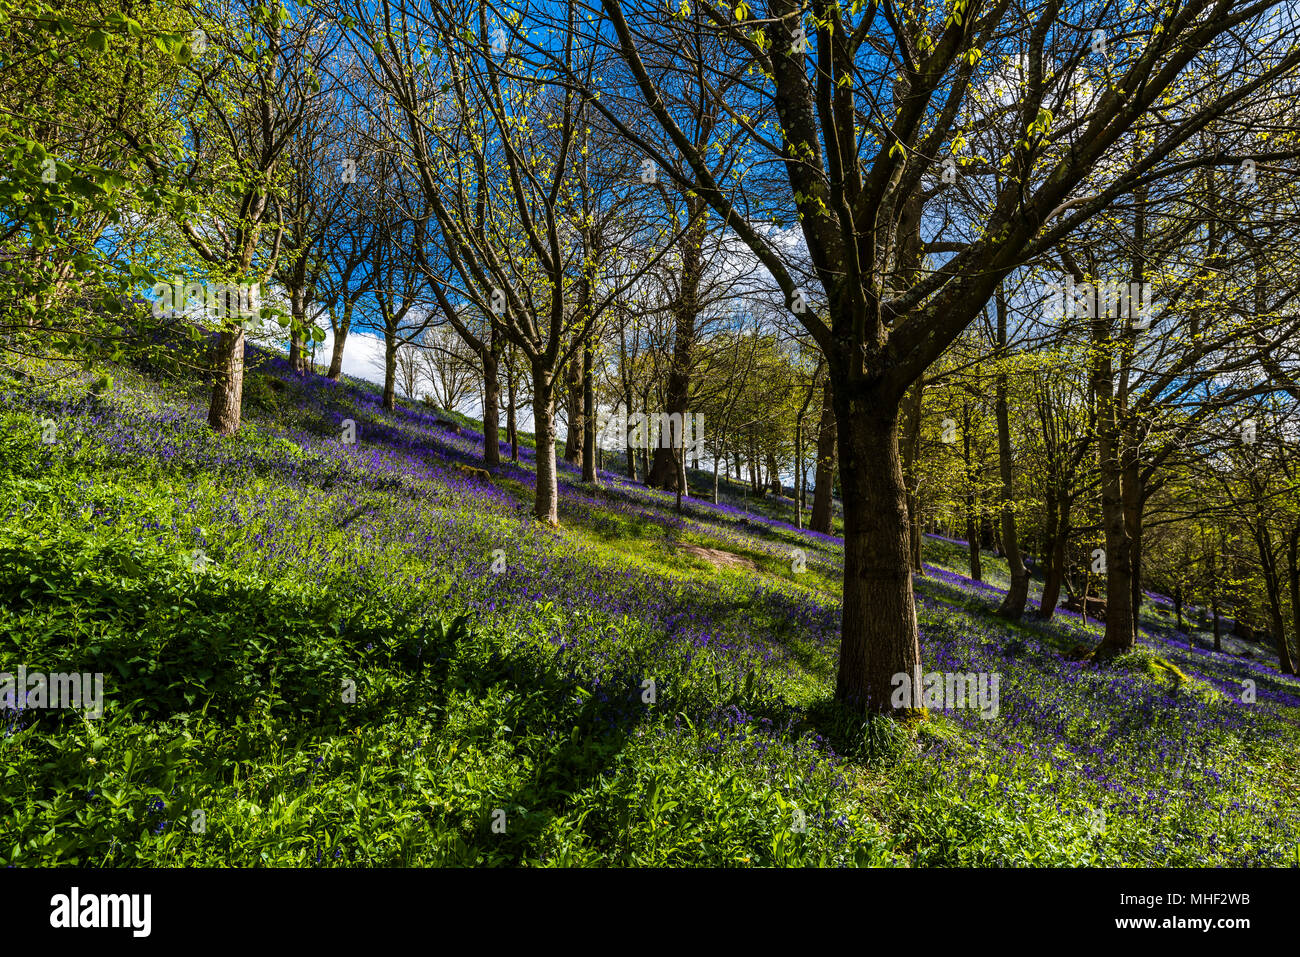 Mass of woodland Bluebells caught in the spring sunshine, Emmetts Garden, Kent, UK - Stock Image